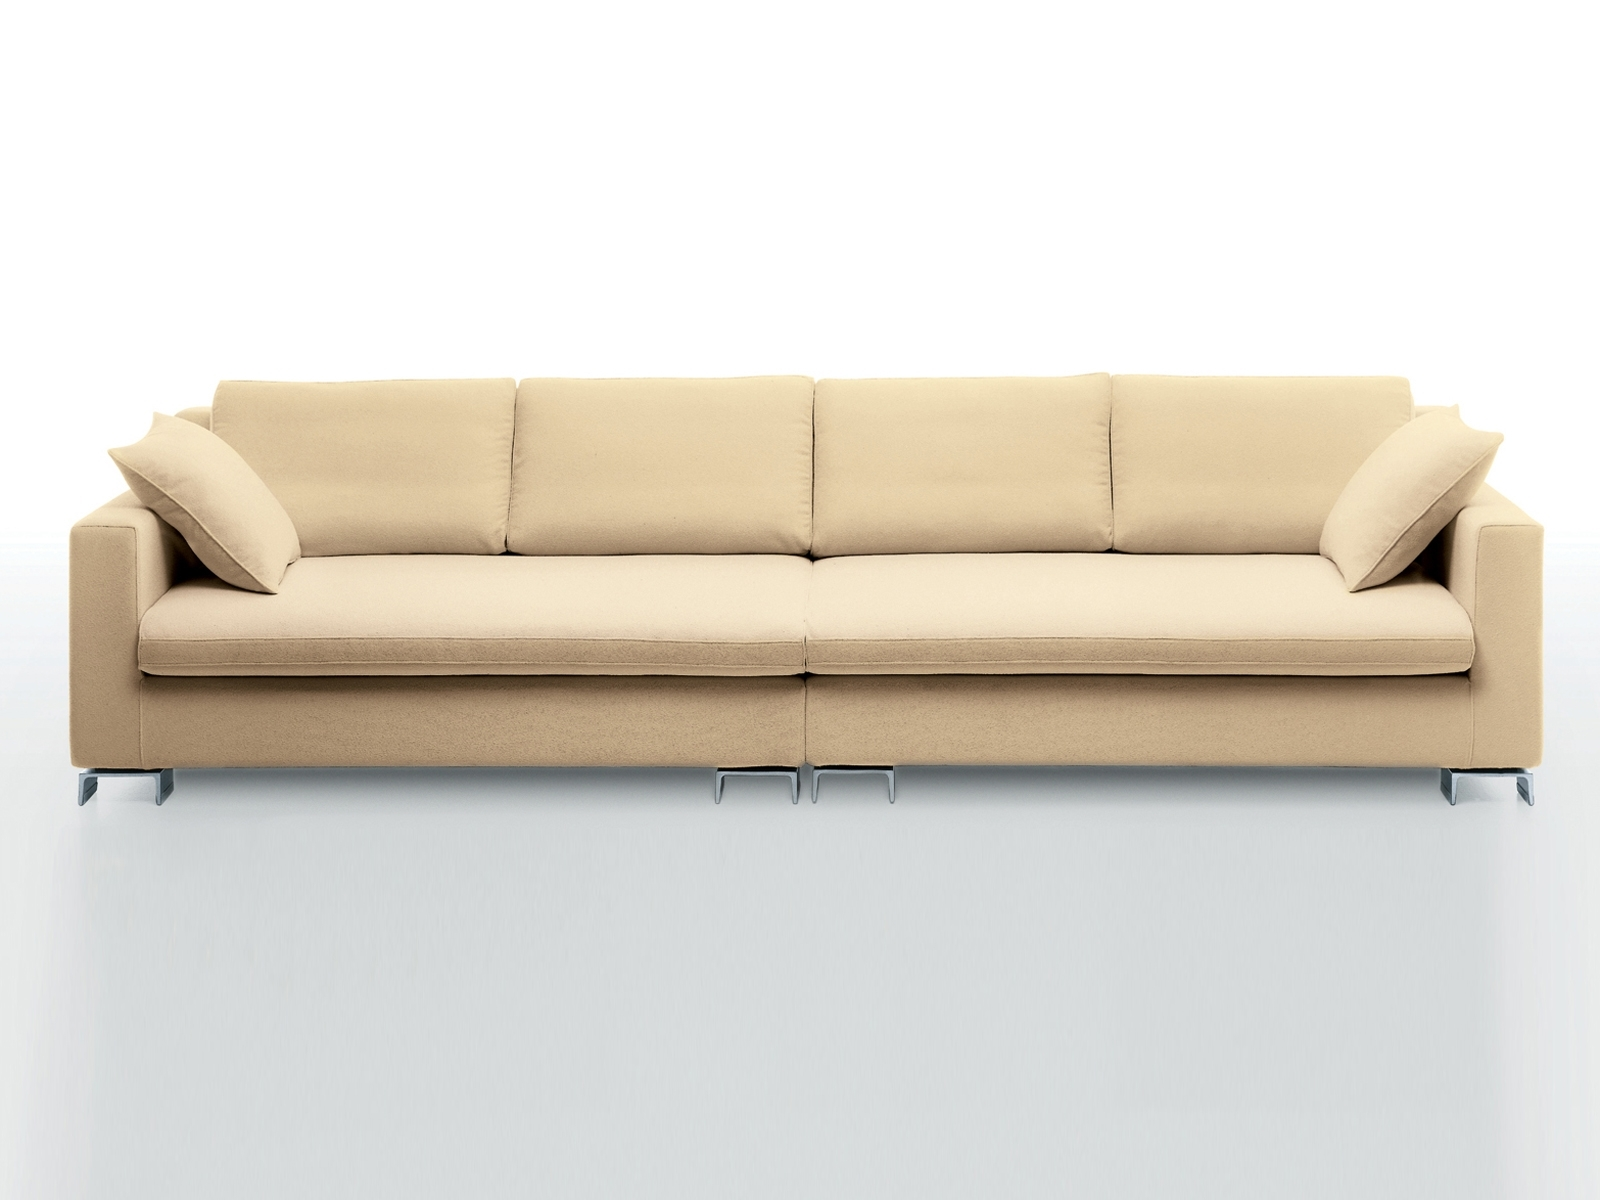 4 Seater Sofa For Large And Trendy Living Room Within Newest 4 Seater Sofas (View 12 of 15)